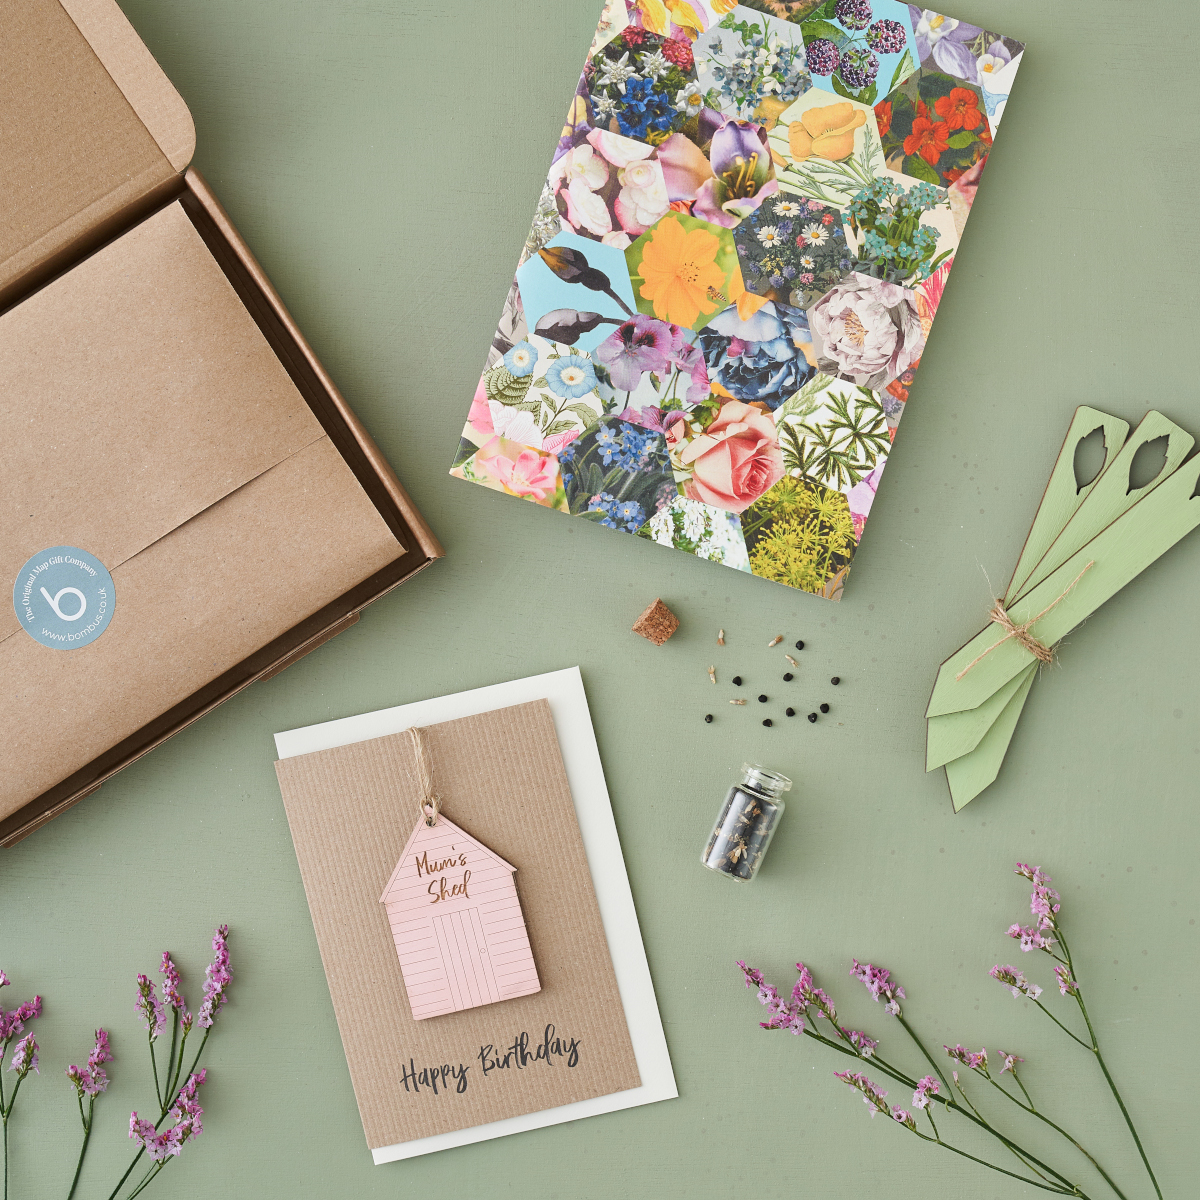 Letterbox Gift for Gardeners from the Bombus range of Thinking of You Gifts